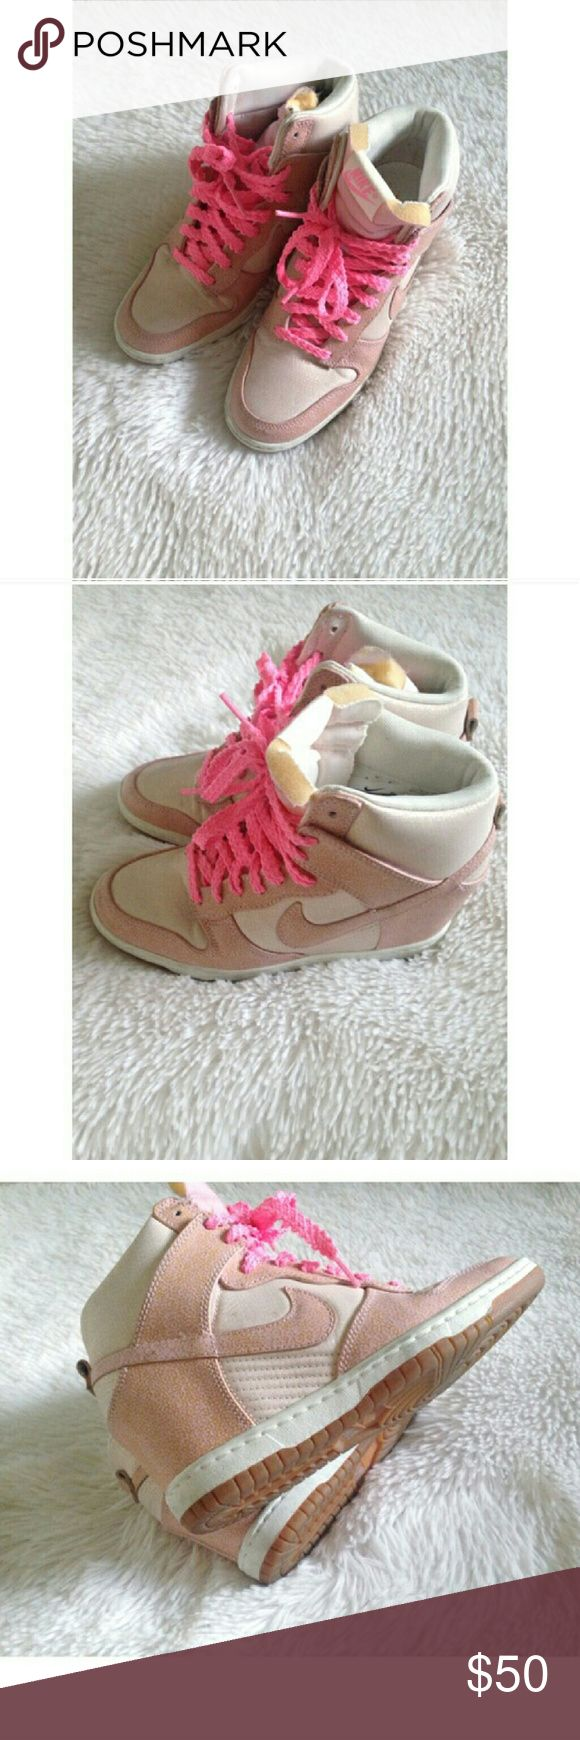 Nike wedge sneakers light pink hot pink laces Great condition Nike wedge sneakers, only worn a couple times, very cute Nike Shoes Sneakers